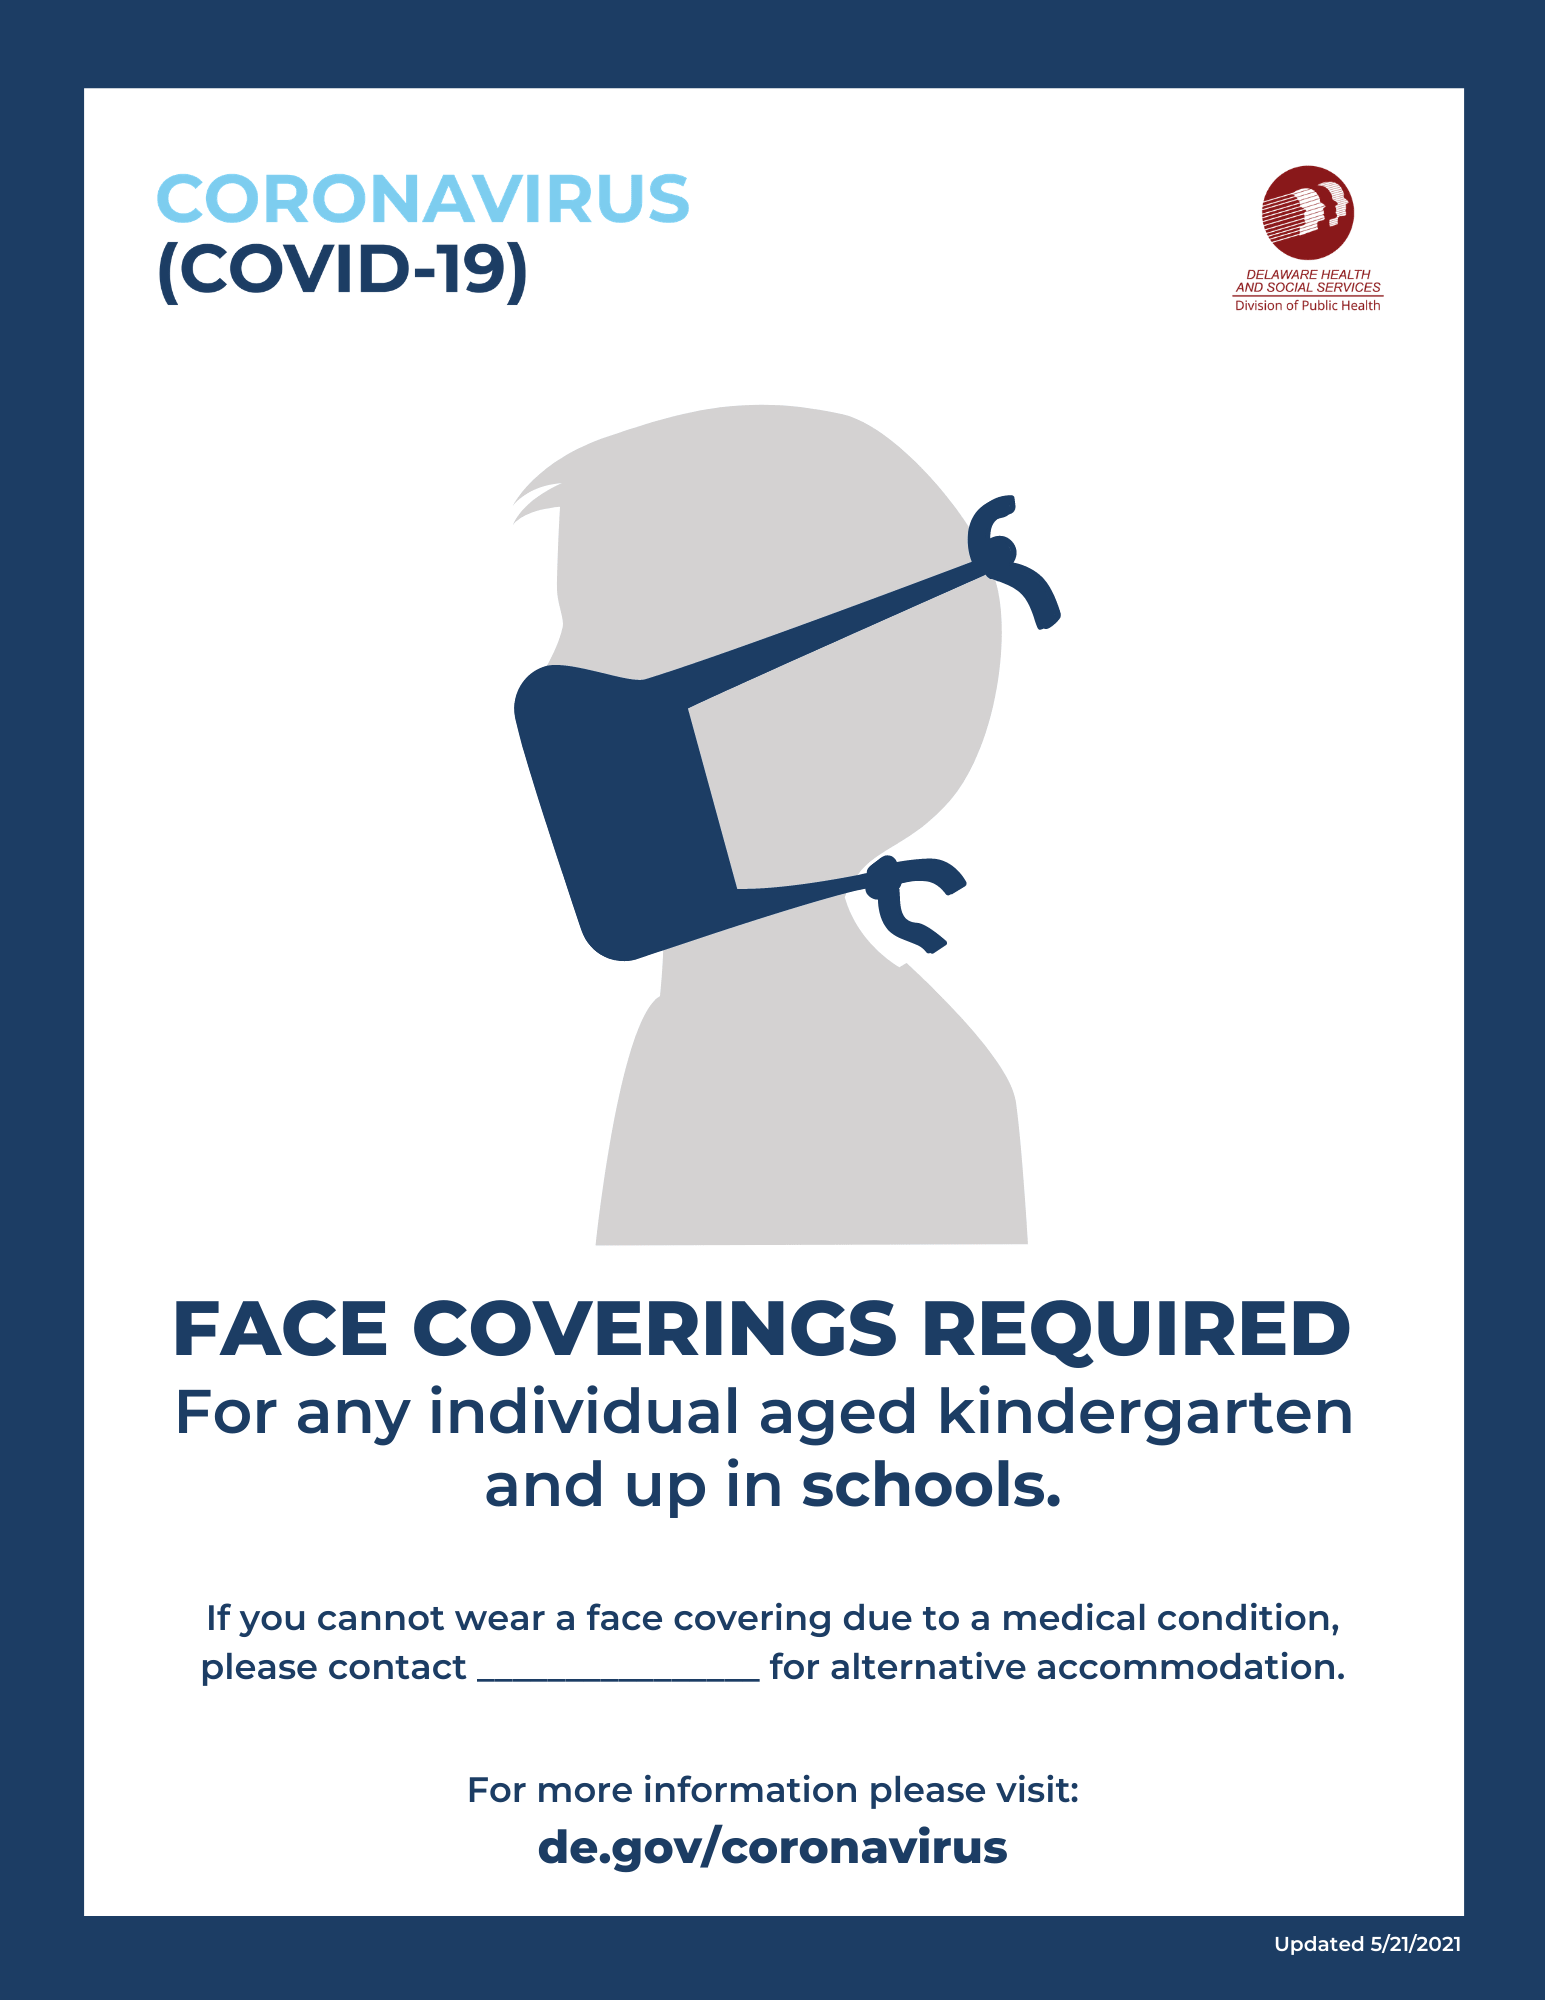 Face coverings are required for ages kindergarten and up within schools